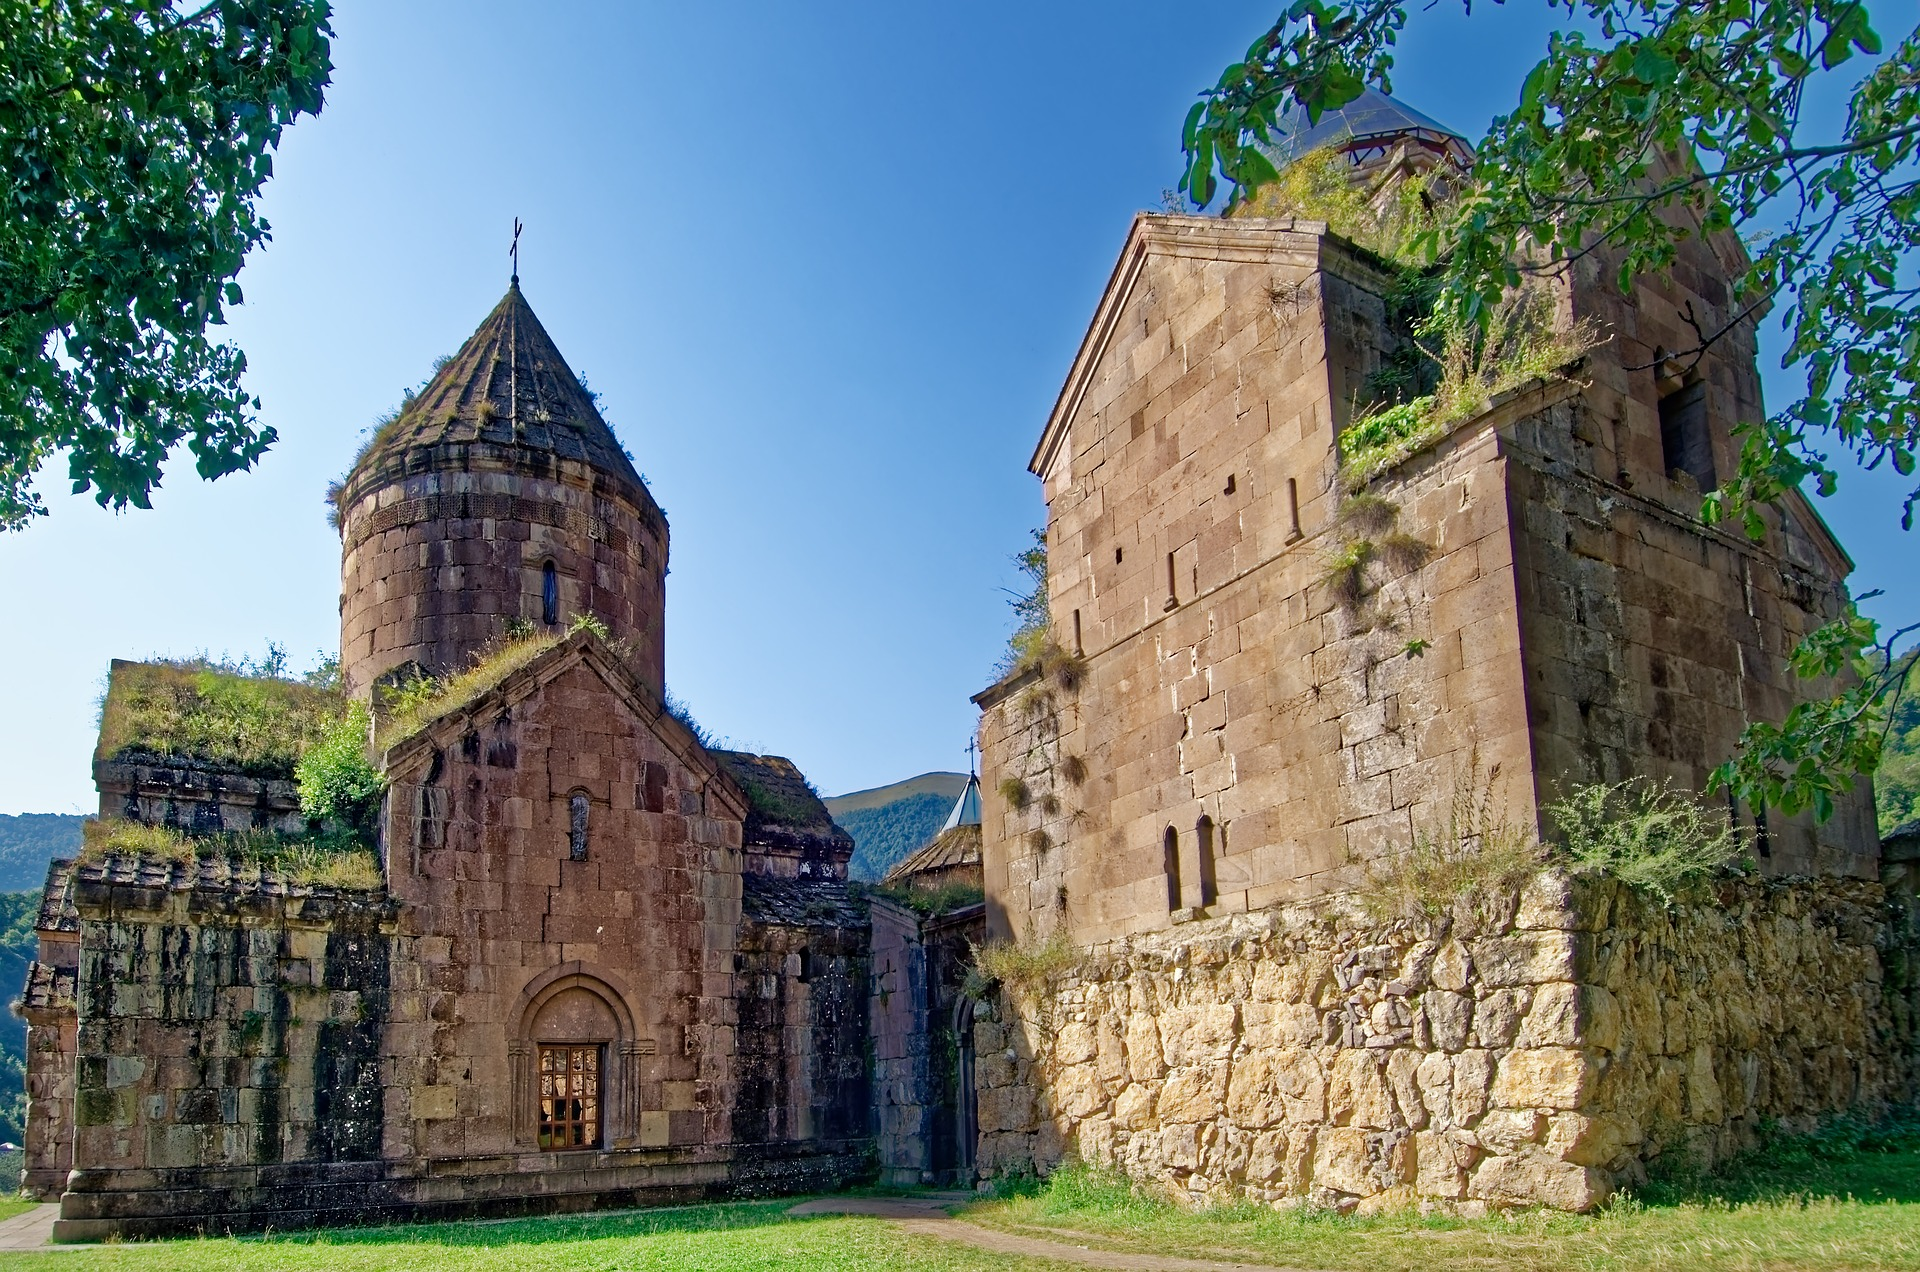 View of an old monastery in Armenia with mountains in the distance